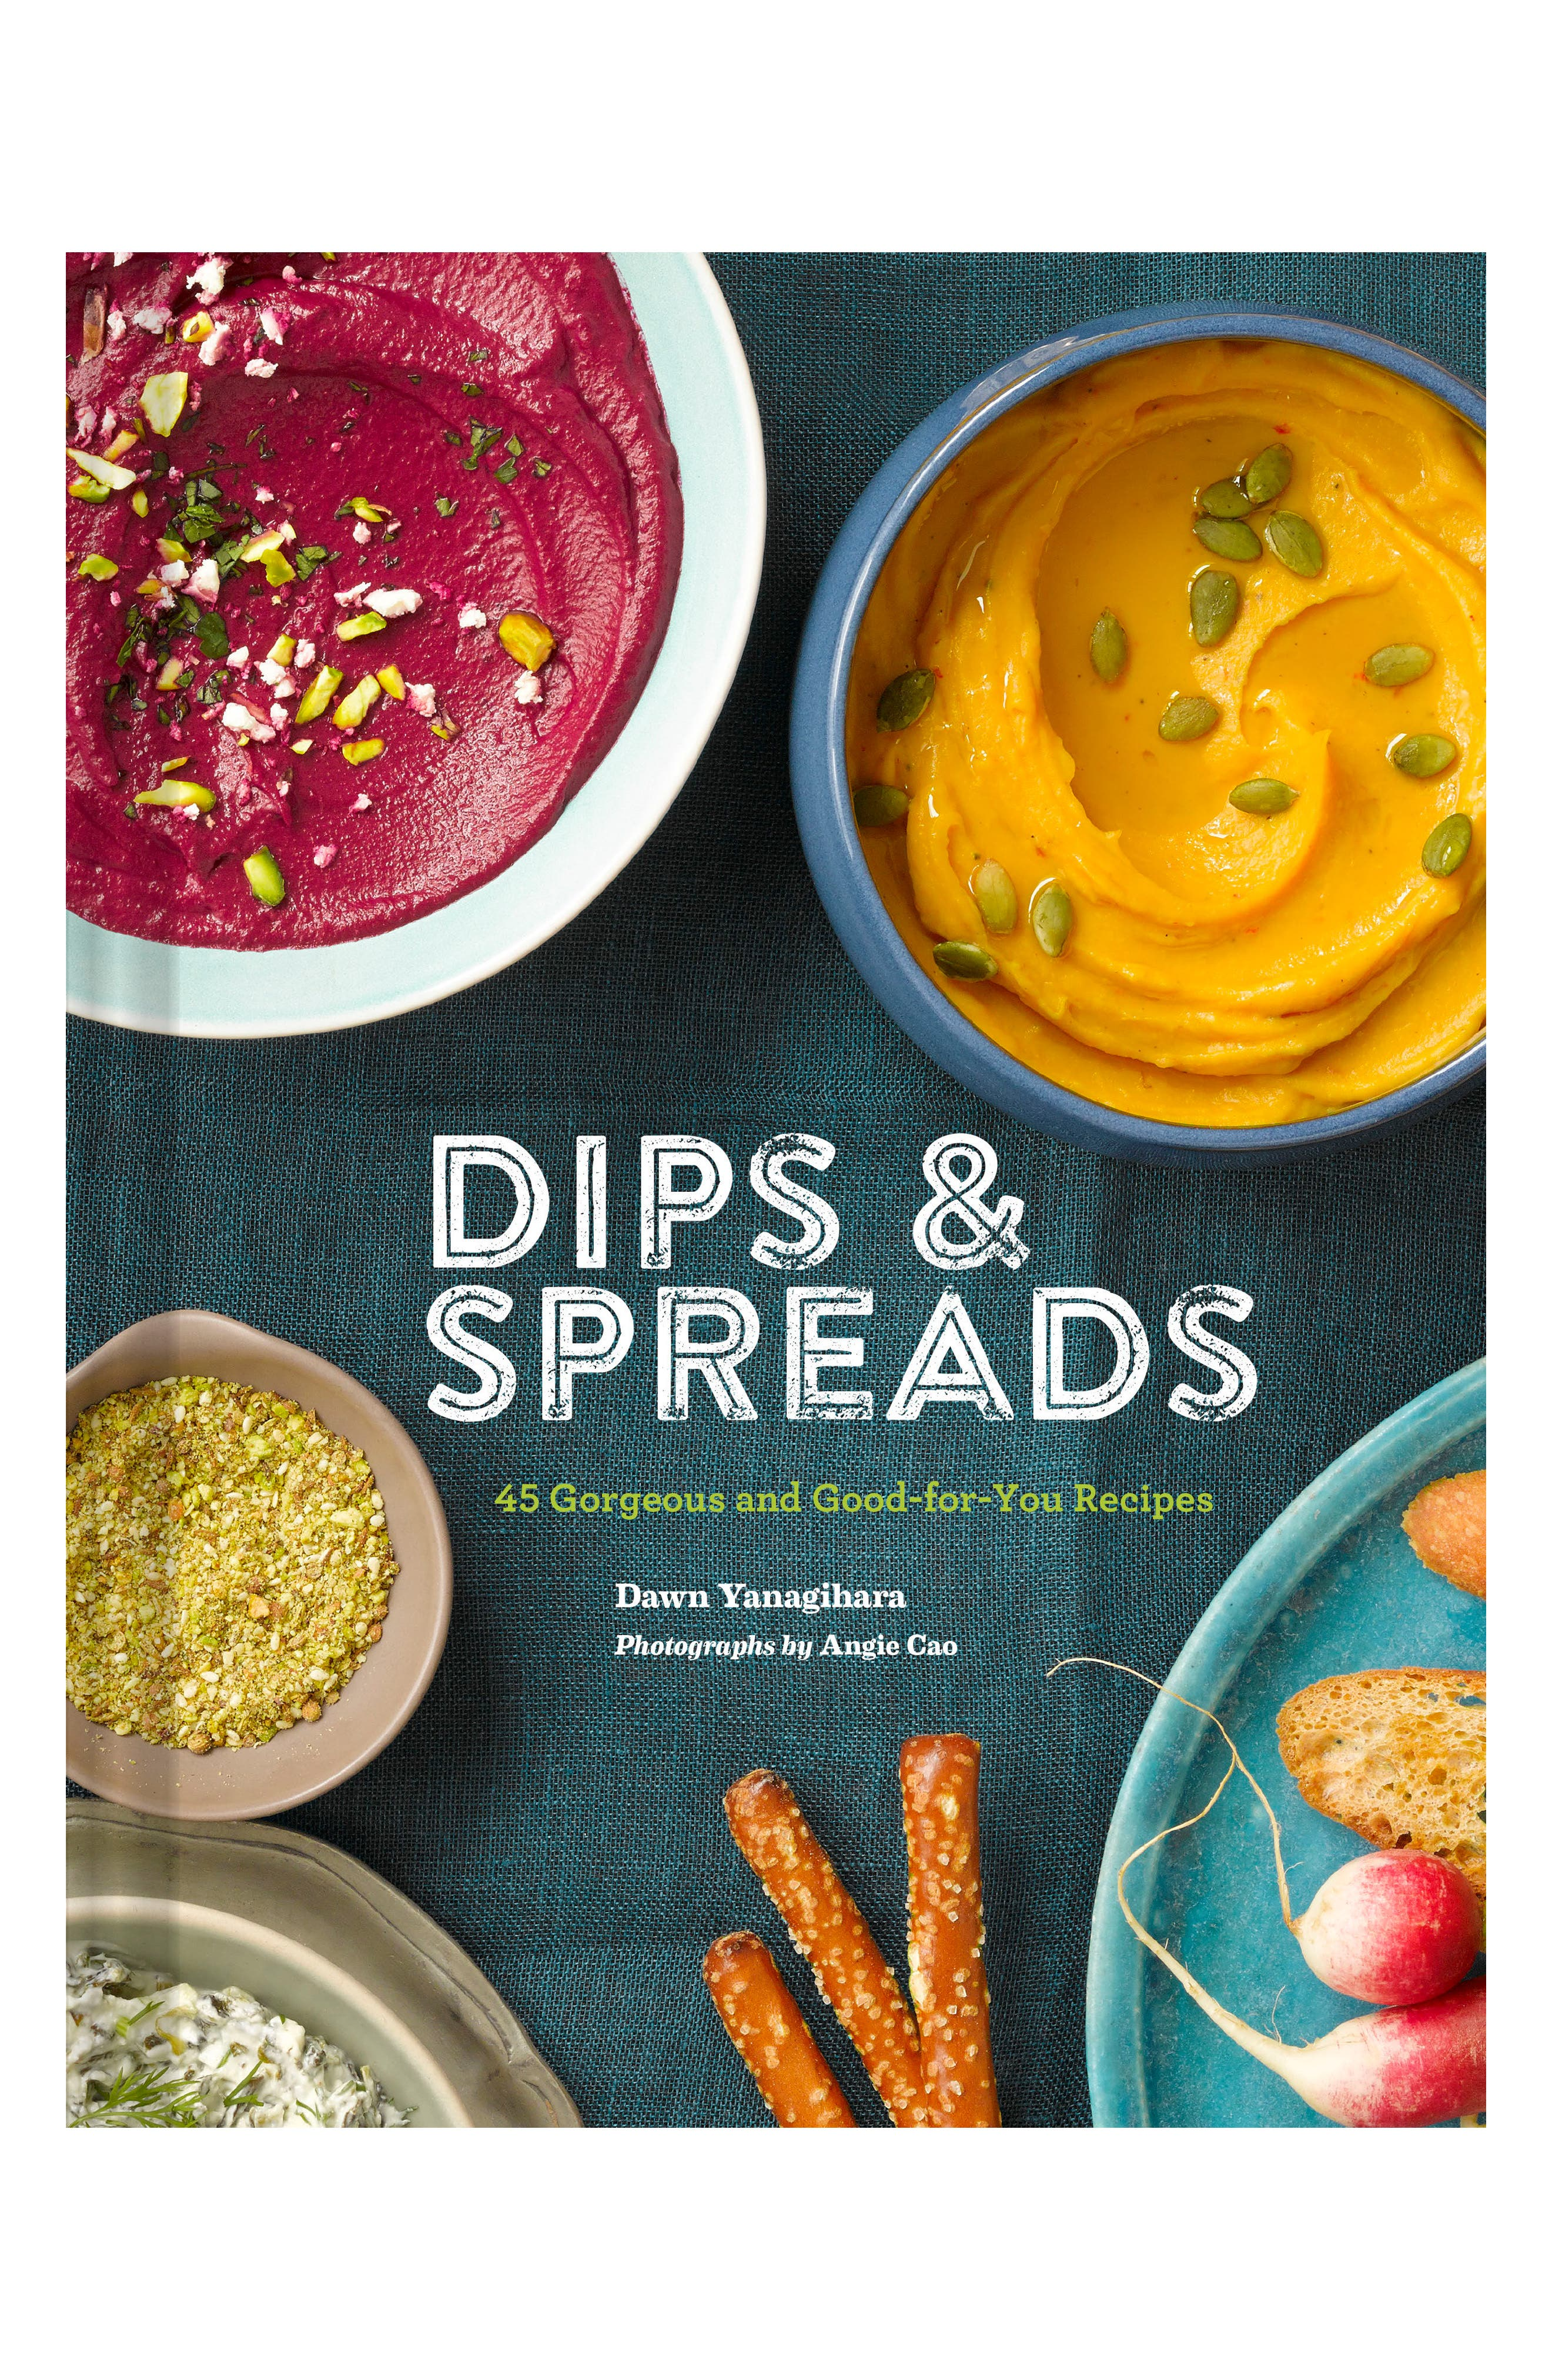 Dips & Spreads: 45 Gorgeous and Good-for-You Recipes Book,                         Main,                         color, 020